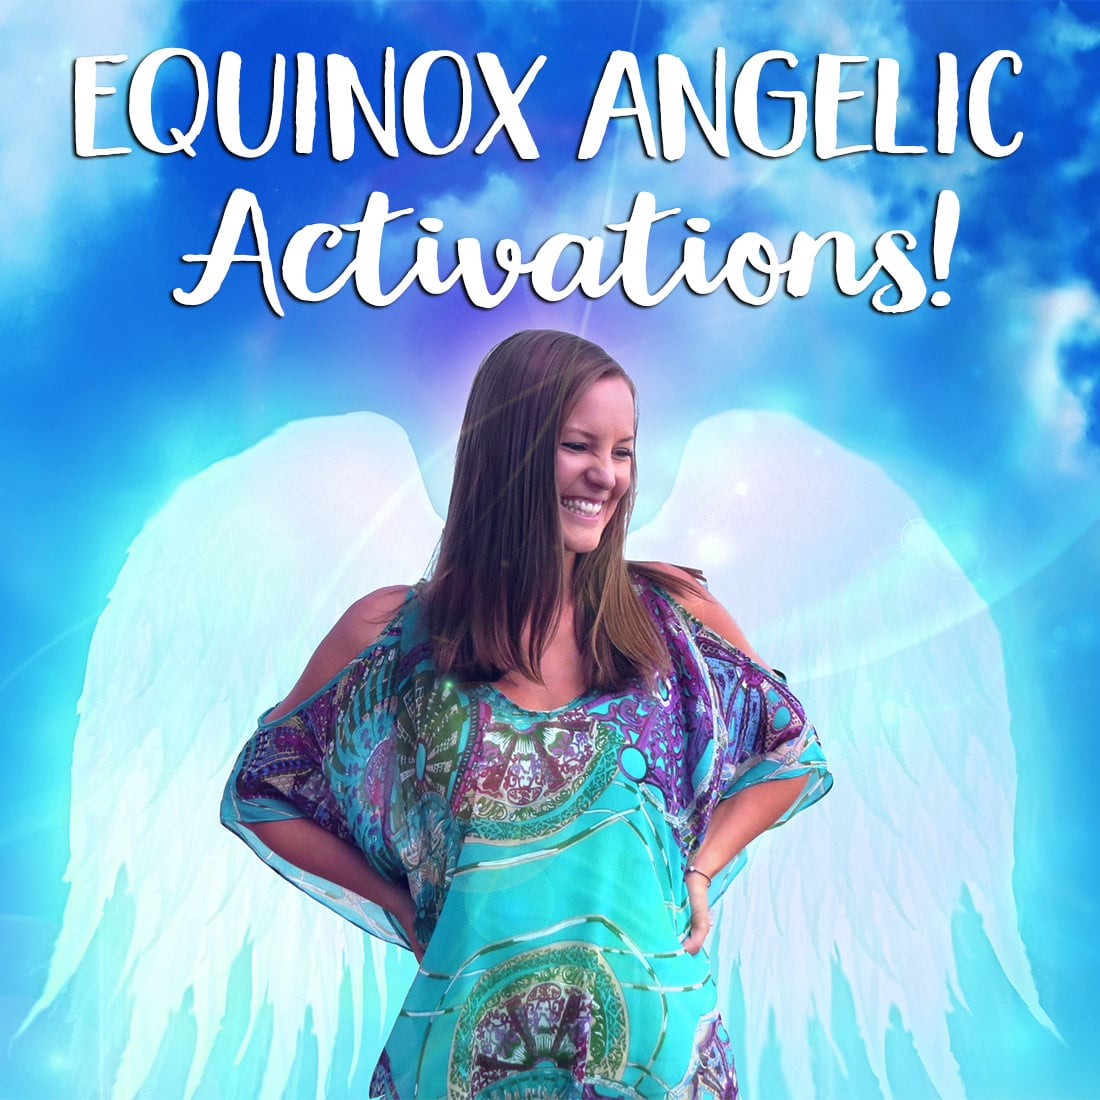 Equinox Angelic Activations